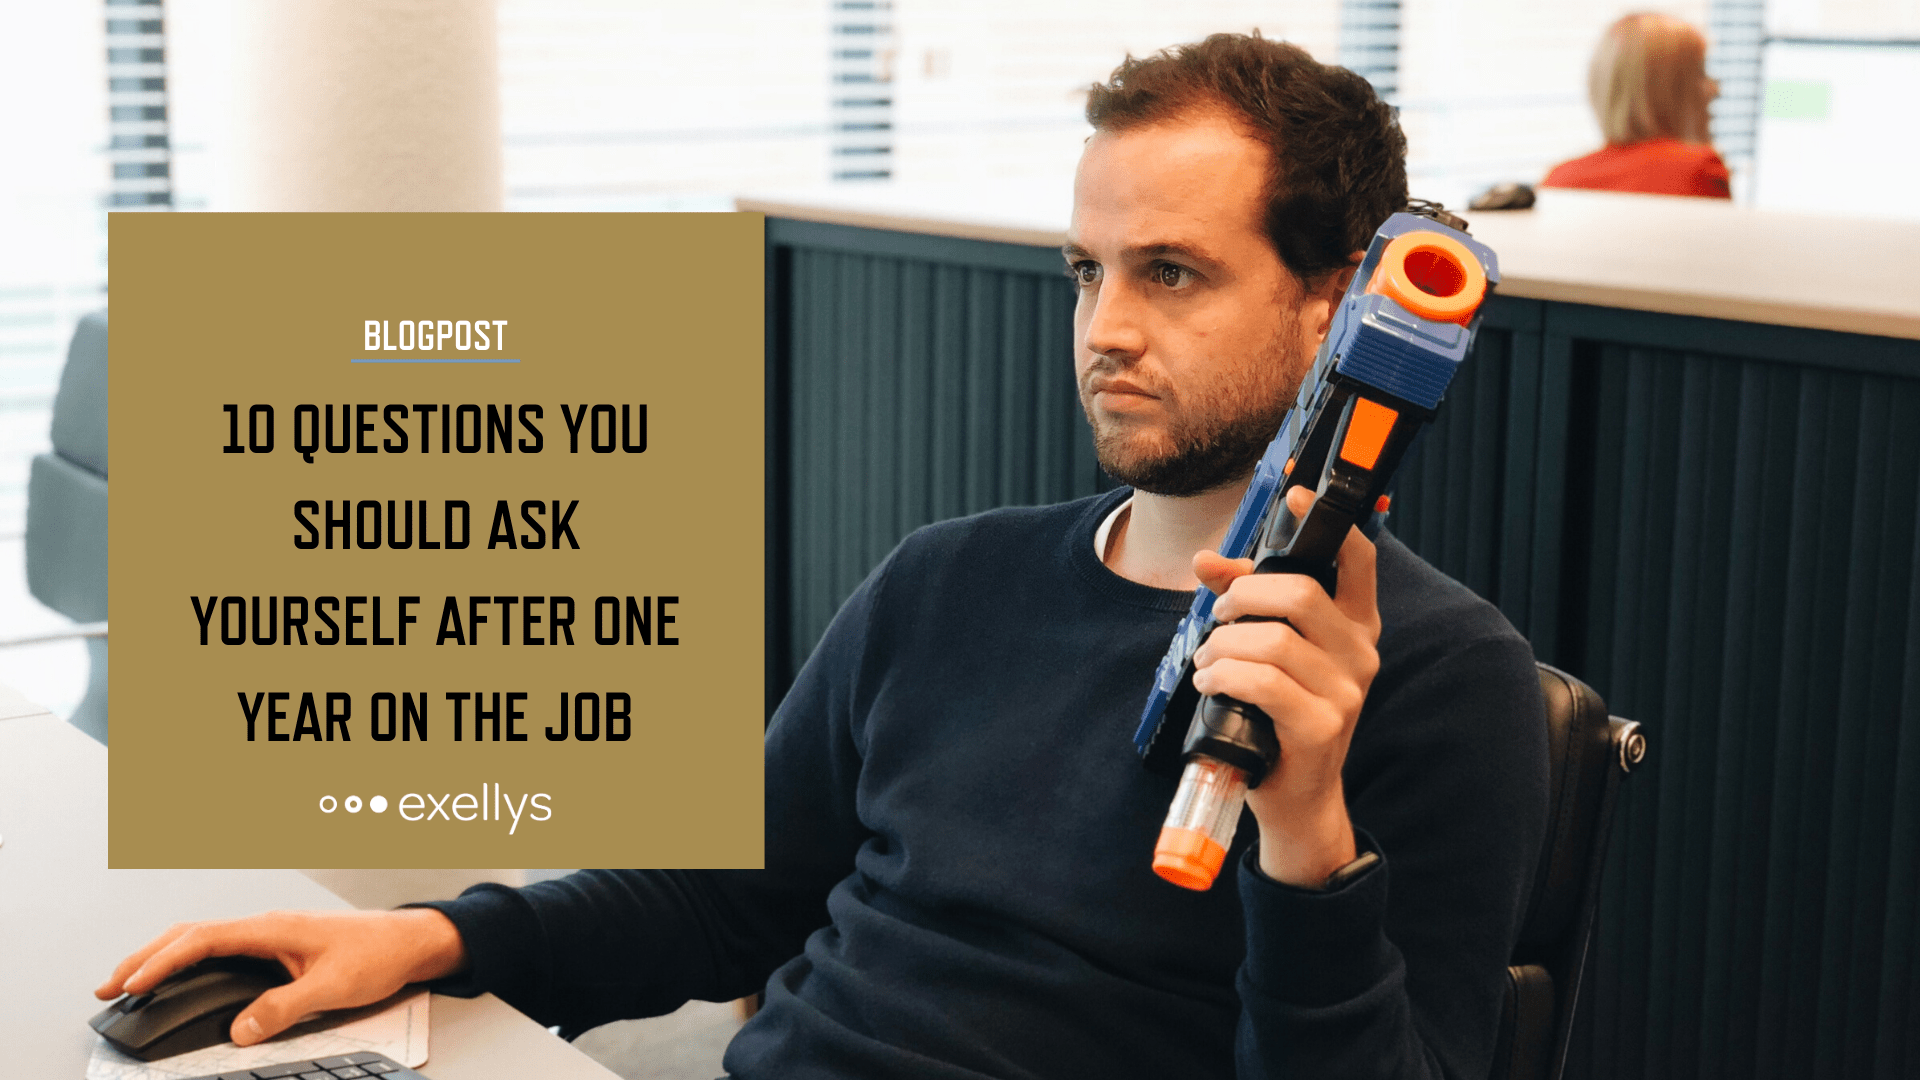 10 questions you should ask yourself after one year on the job